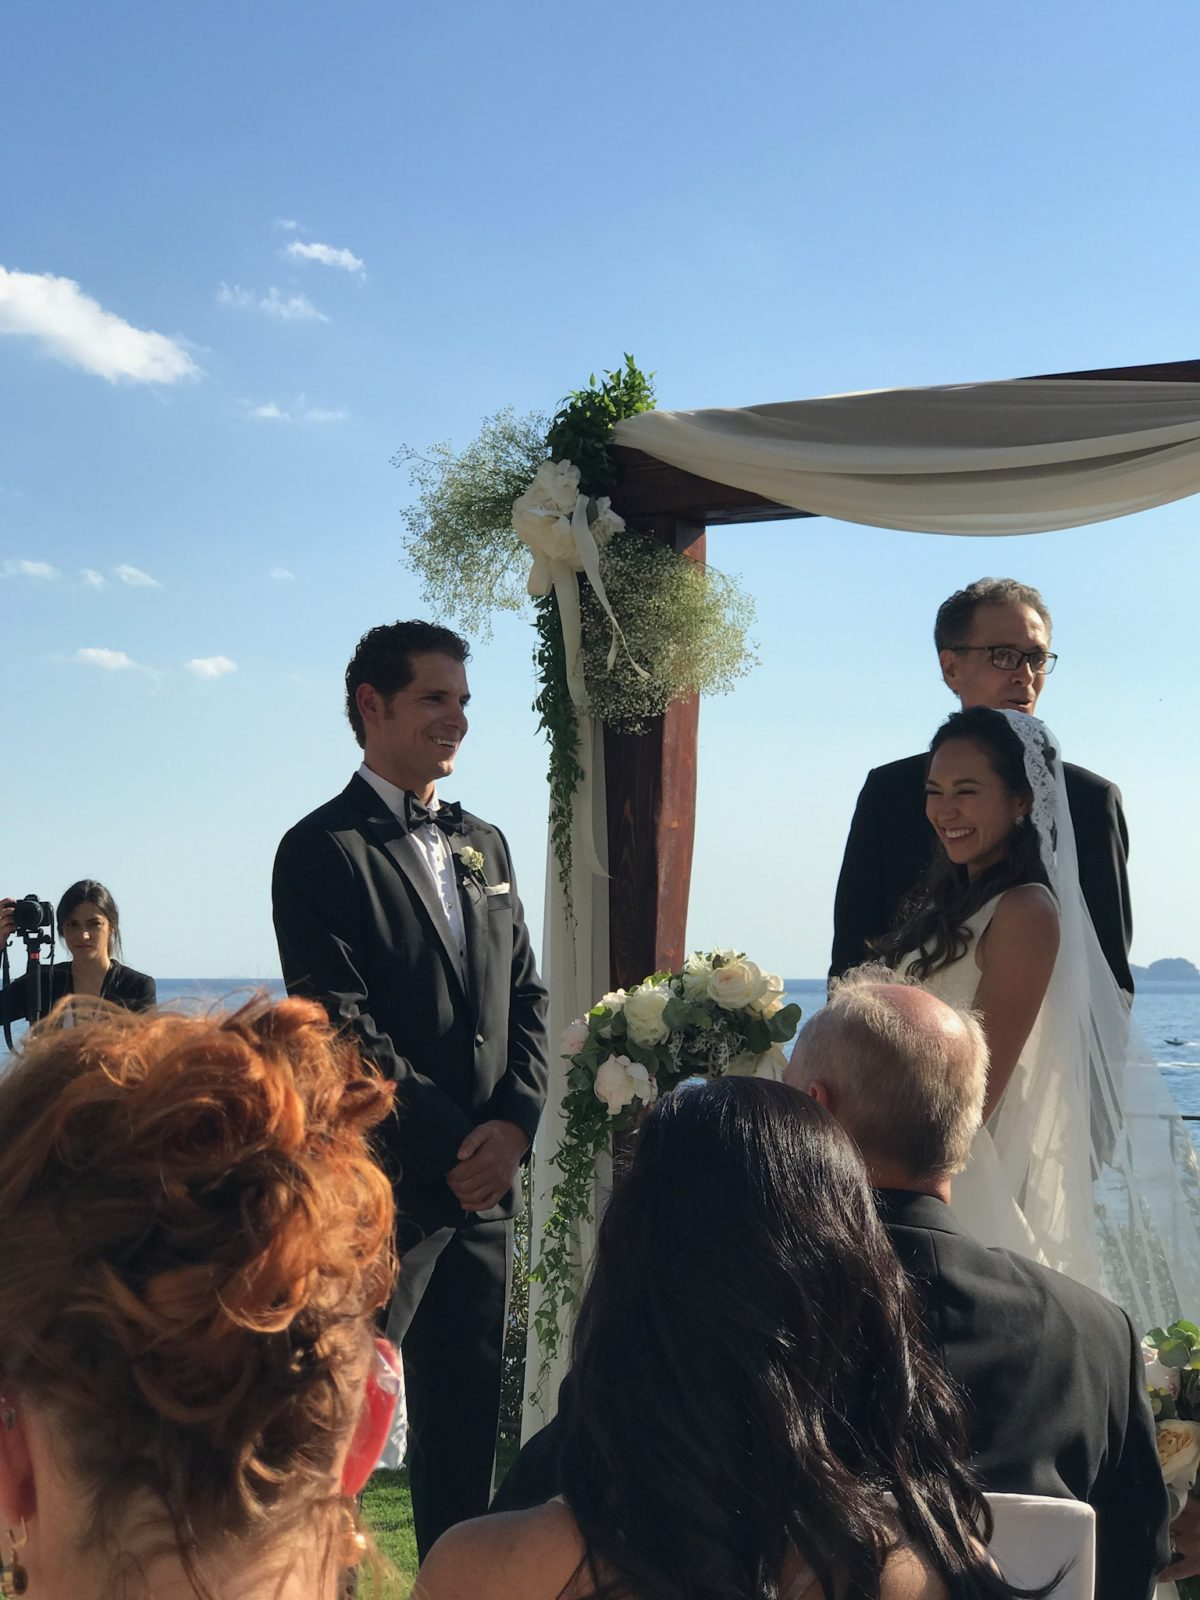 Nathalie and Benjamin wedding in Positano (3)